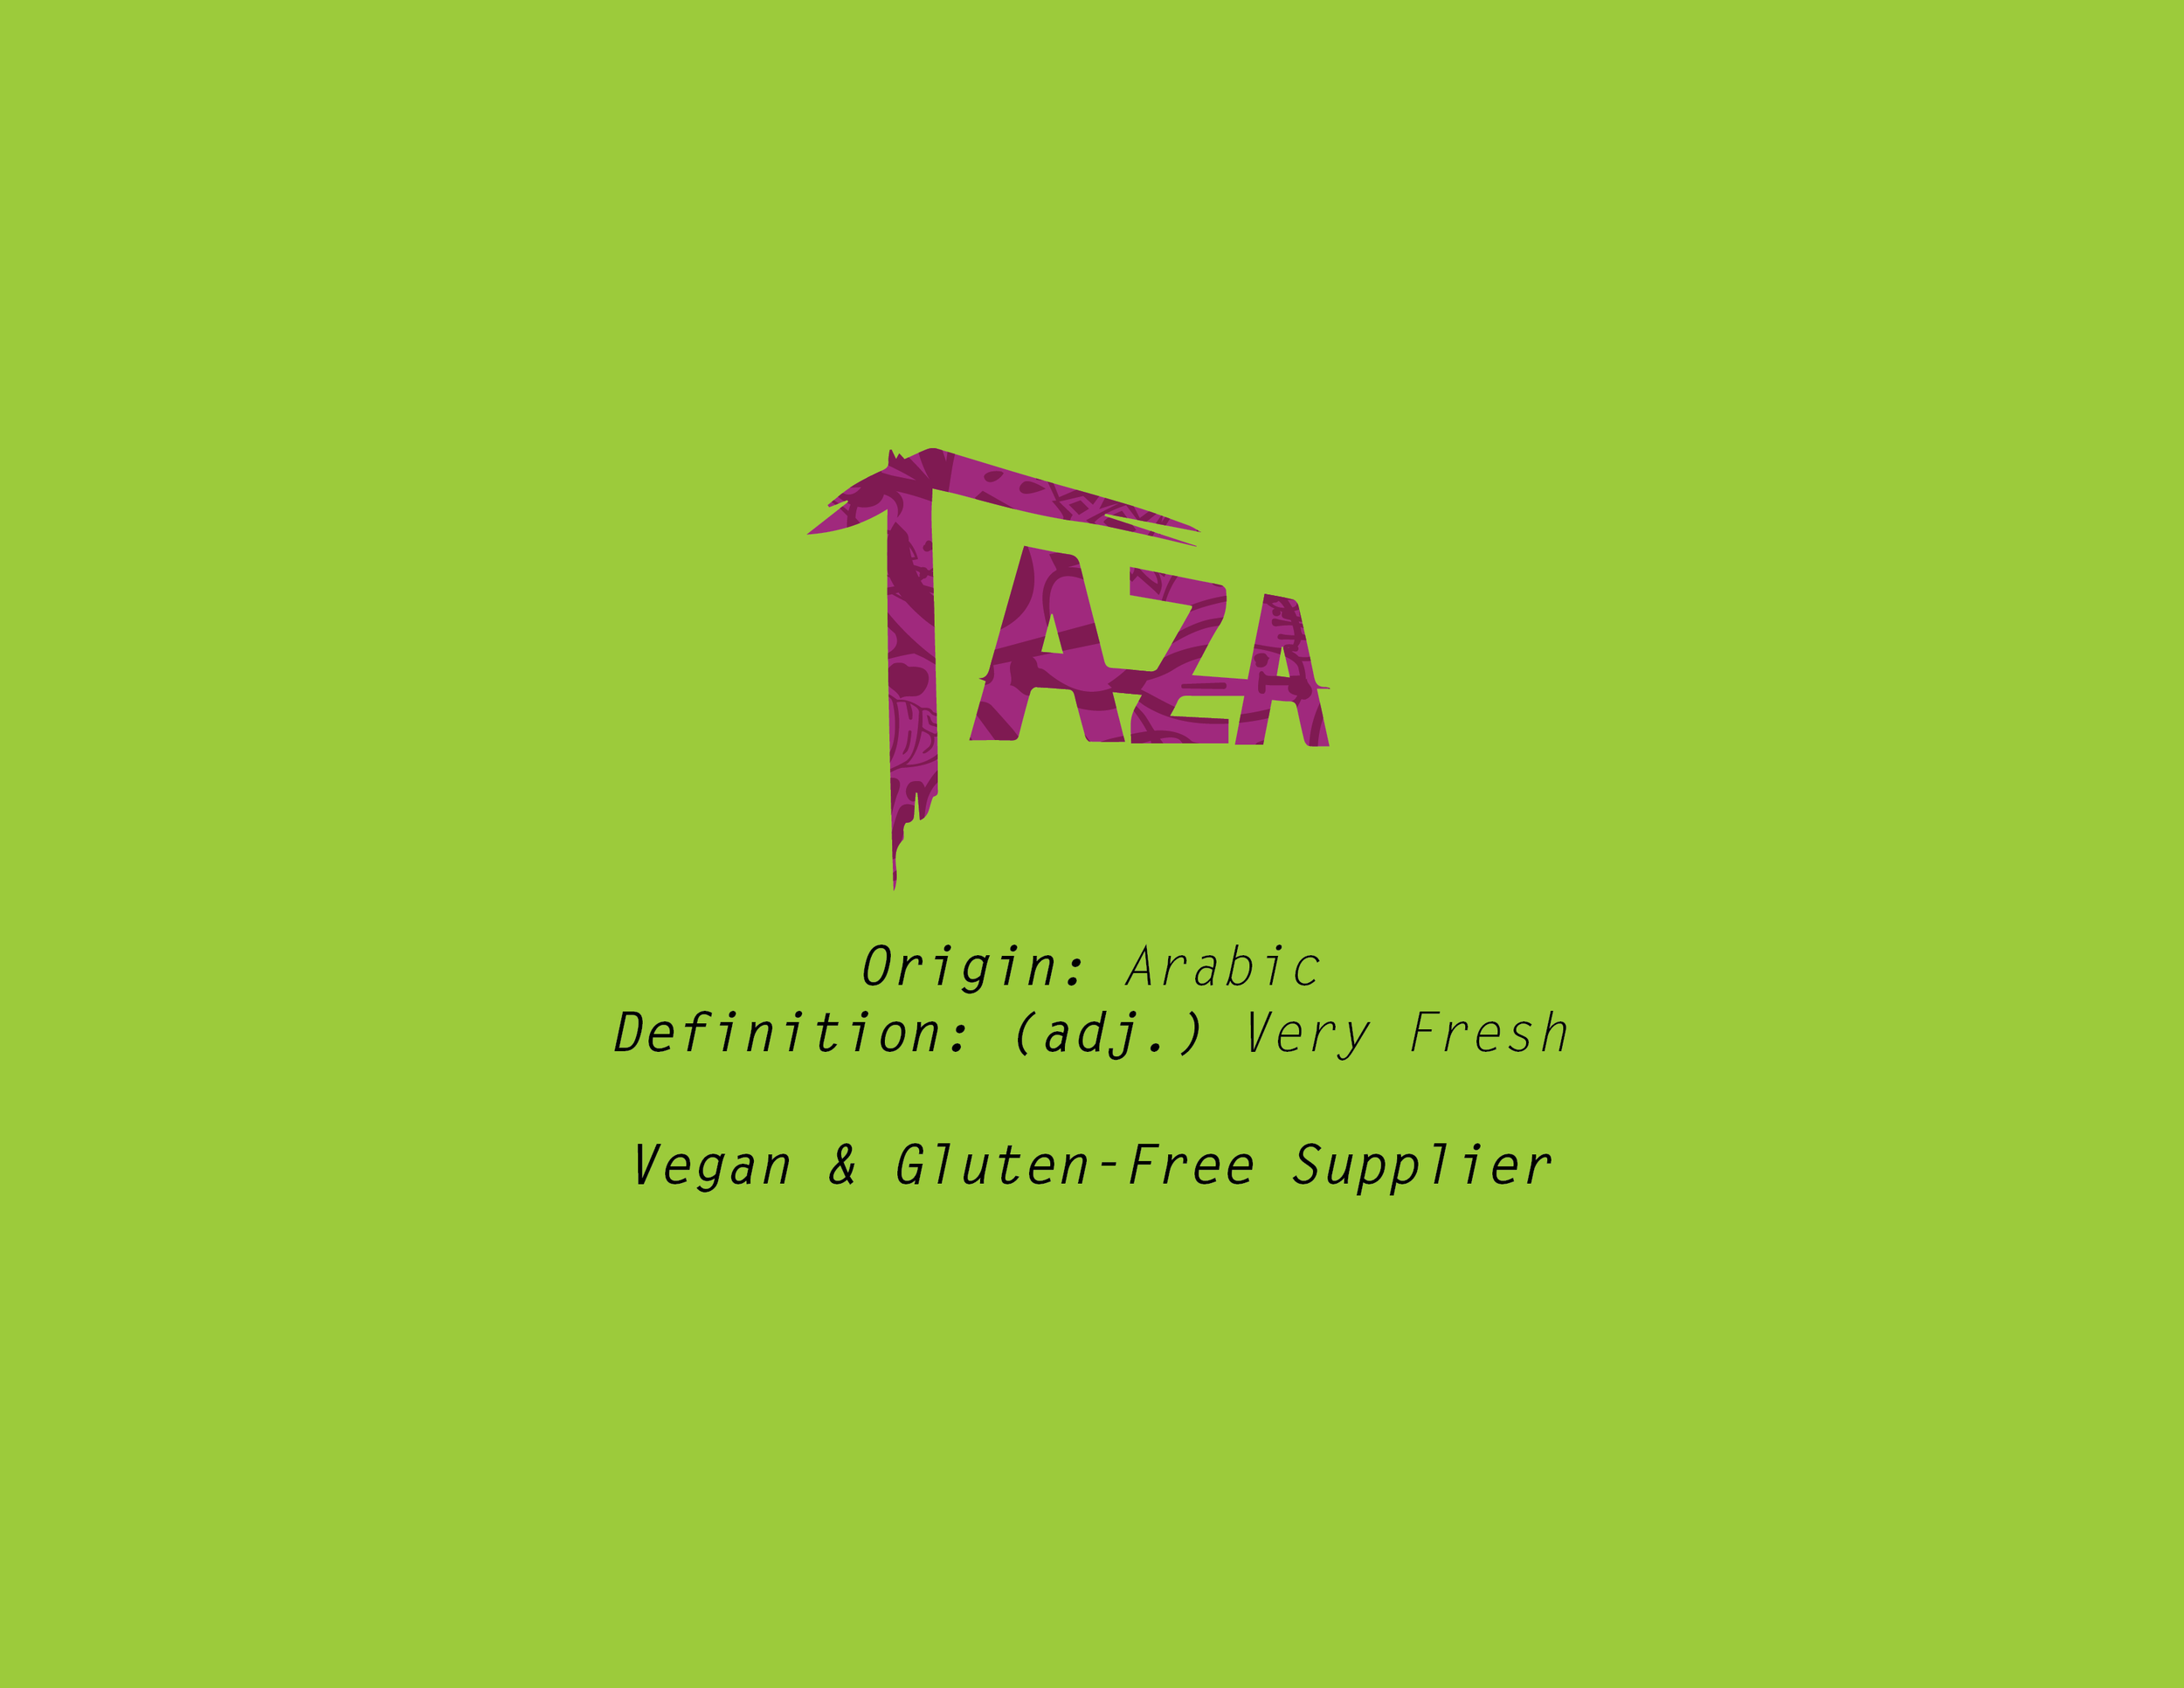 Taza Pitch Book3.png